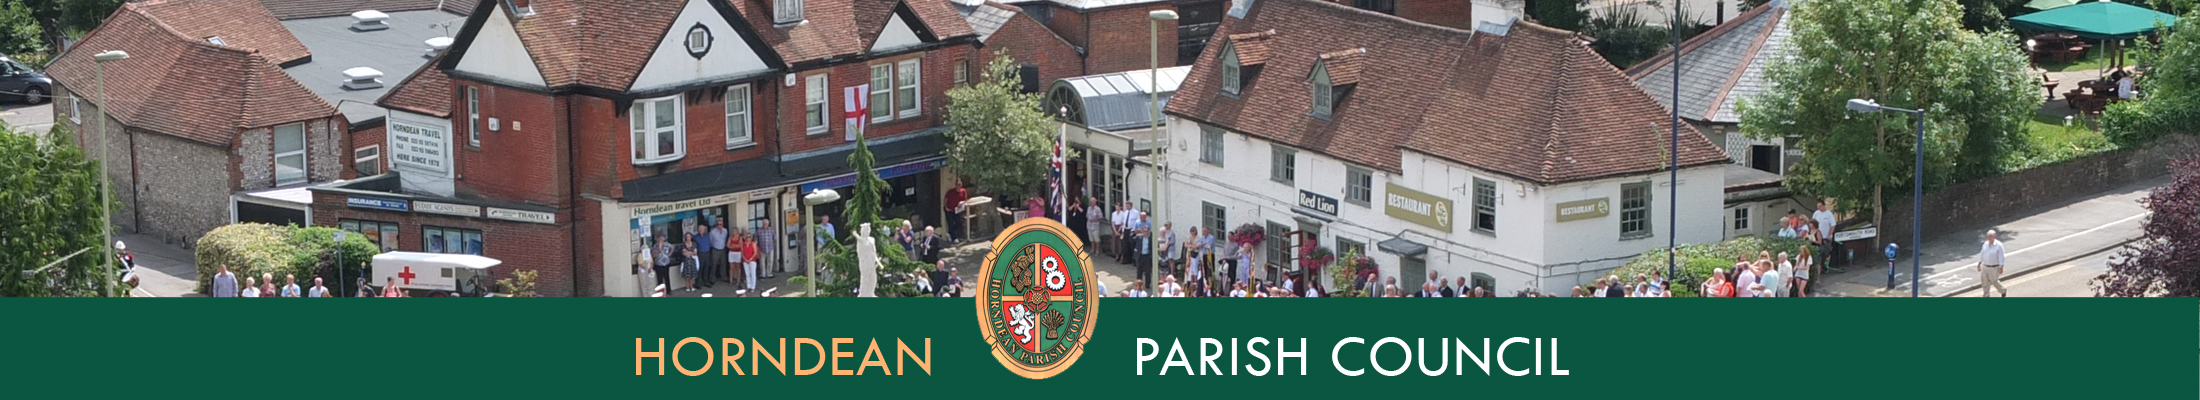 Header Image for Horndean Parish Council